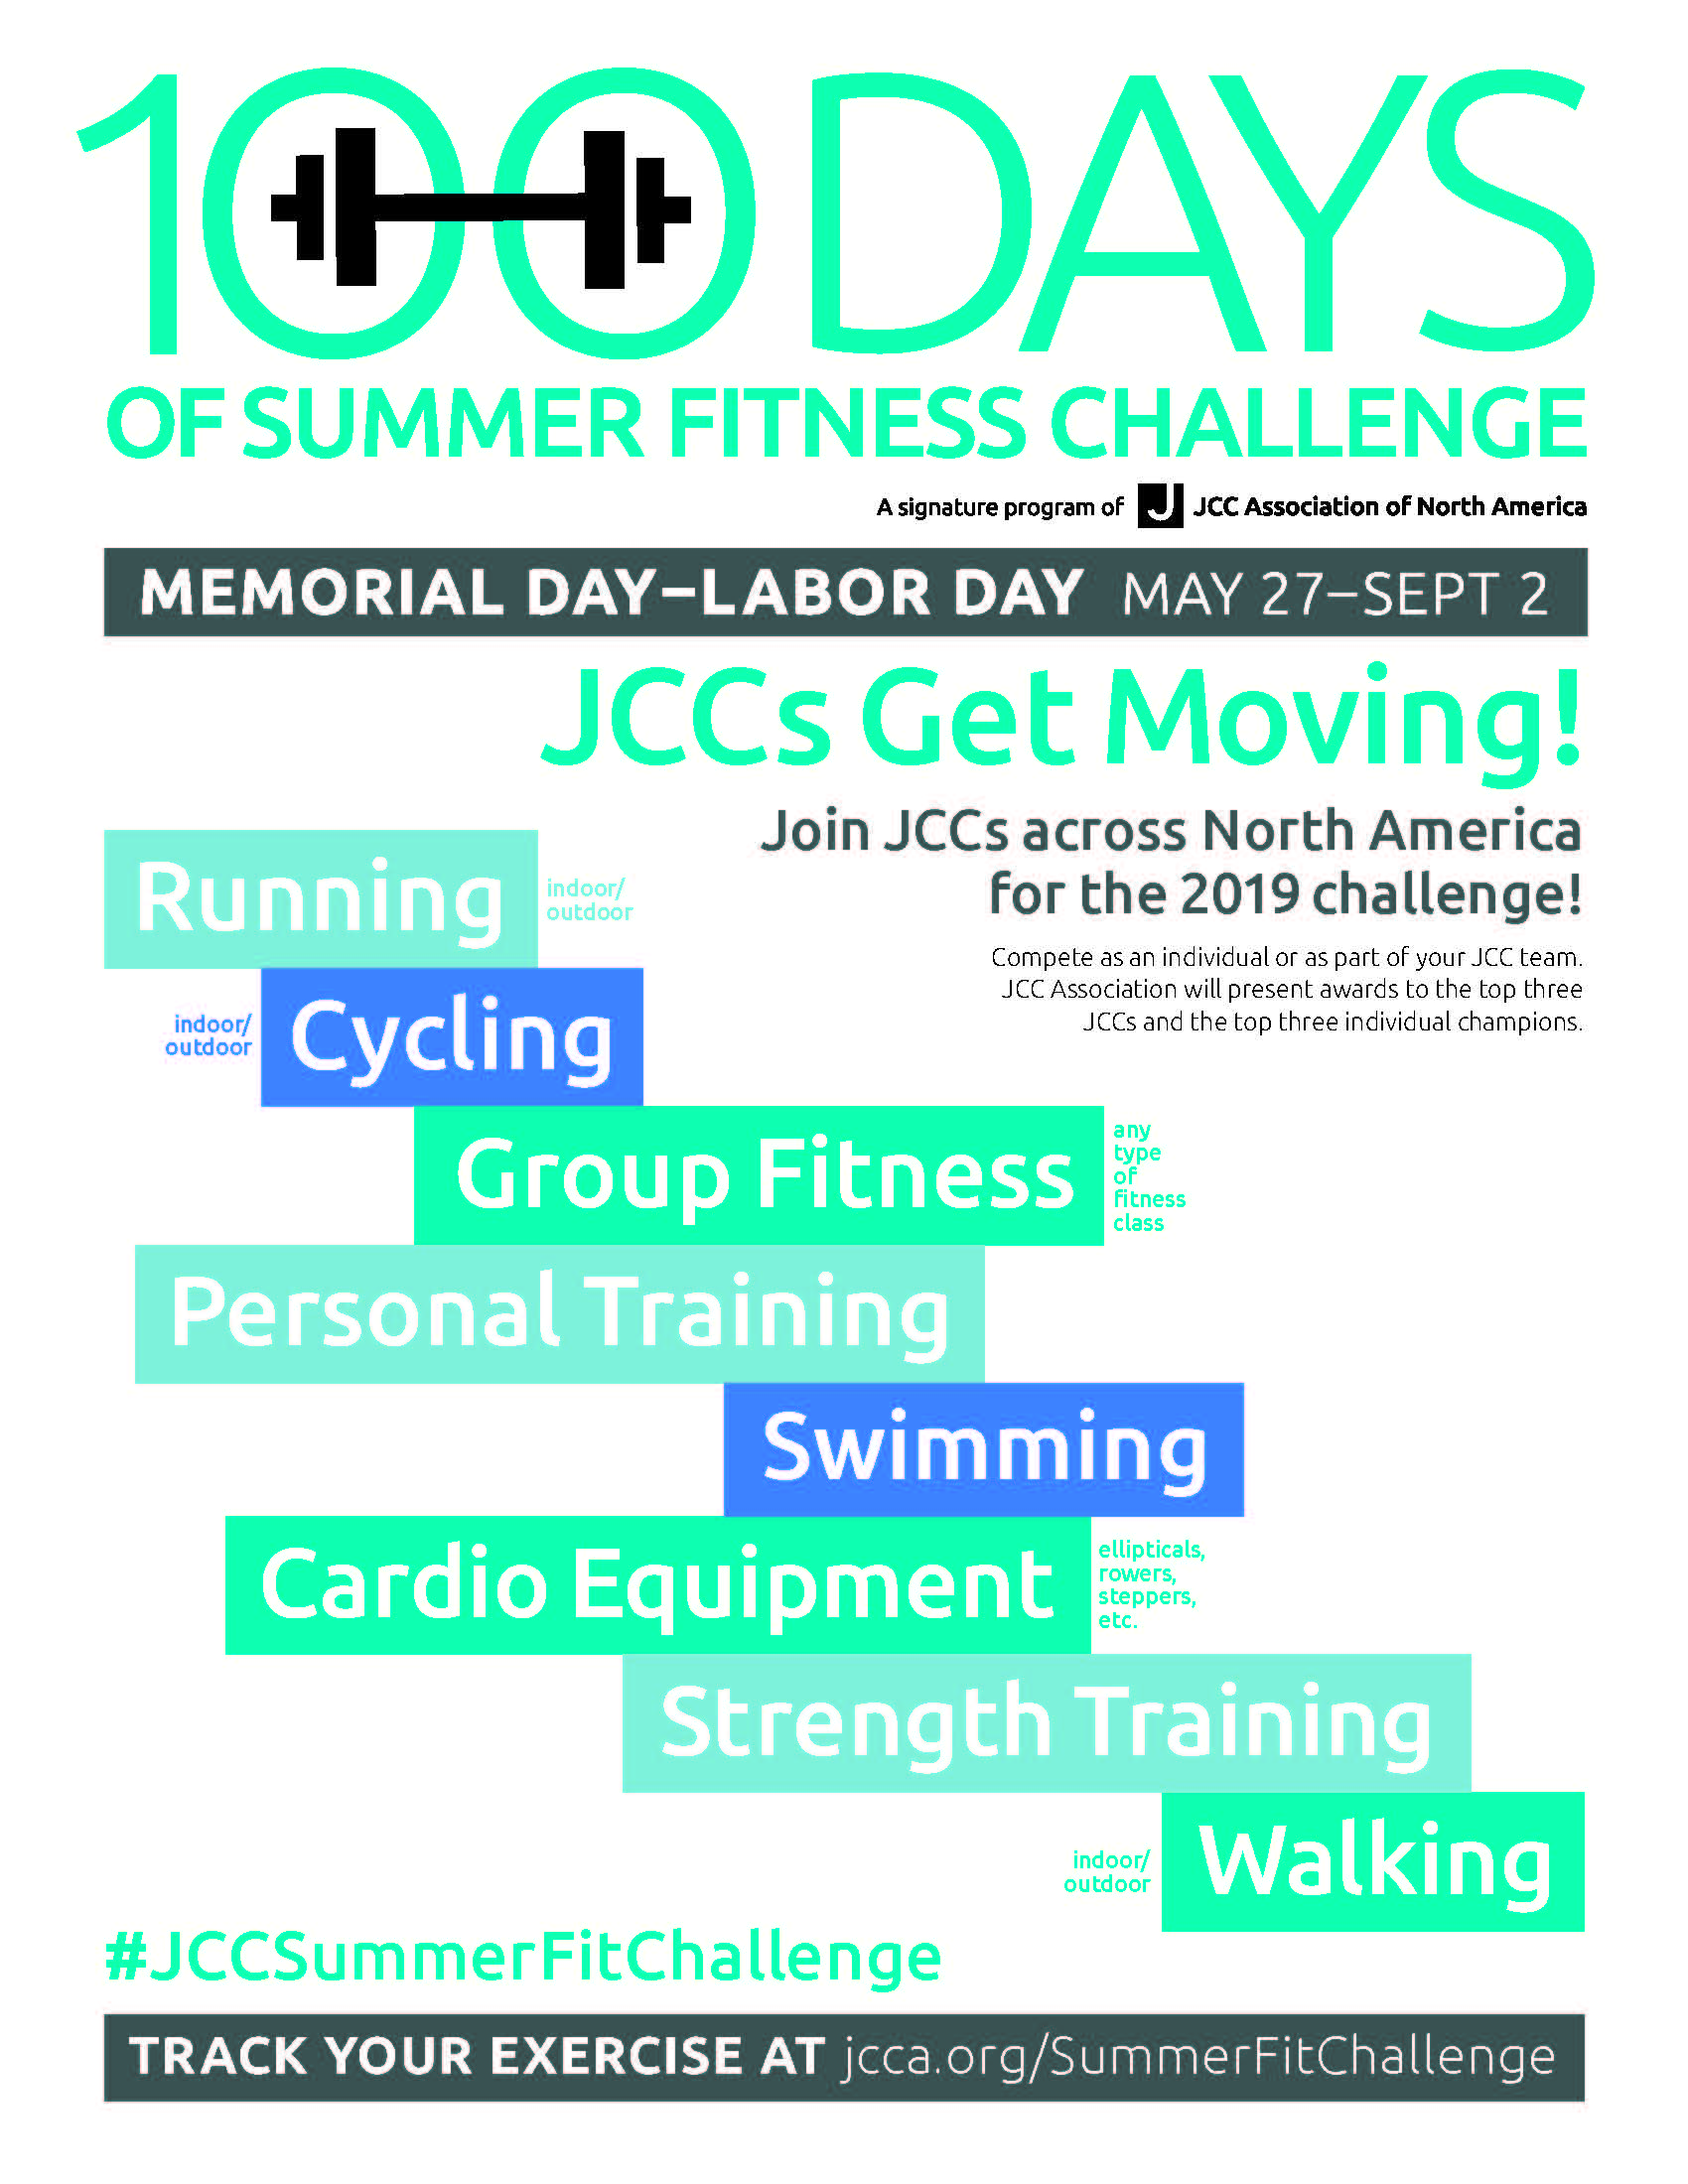 100 Days of Summer Fitness Challenge